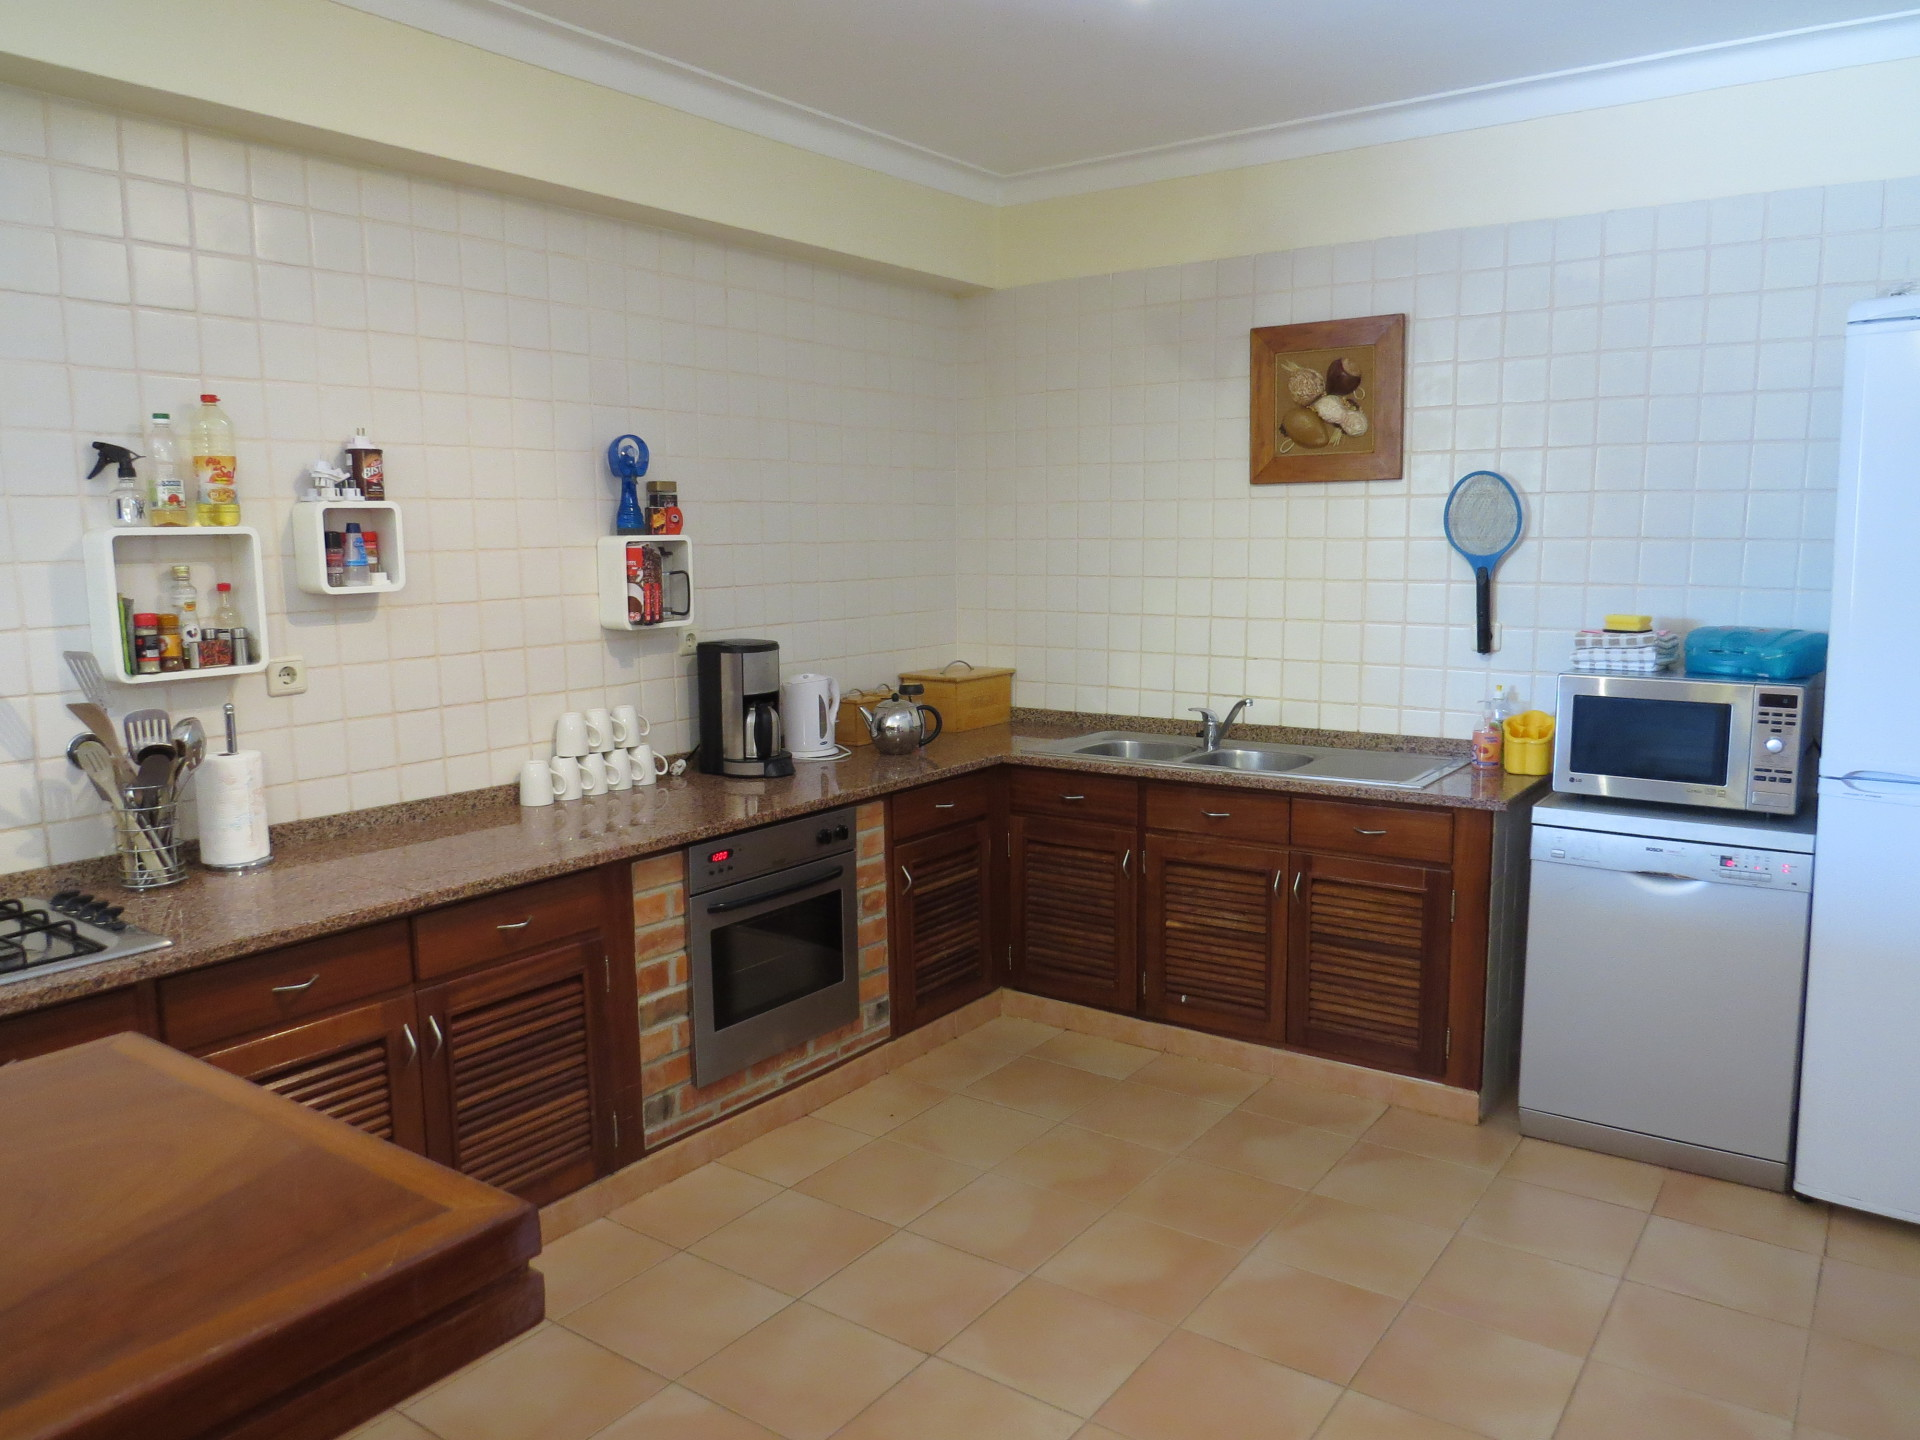 3 bedroom apartment kitchen area